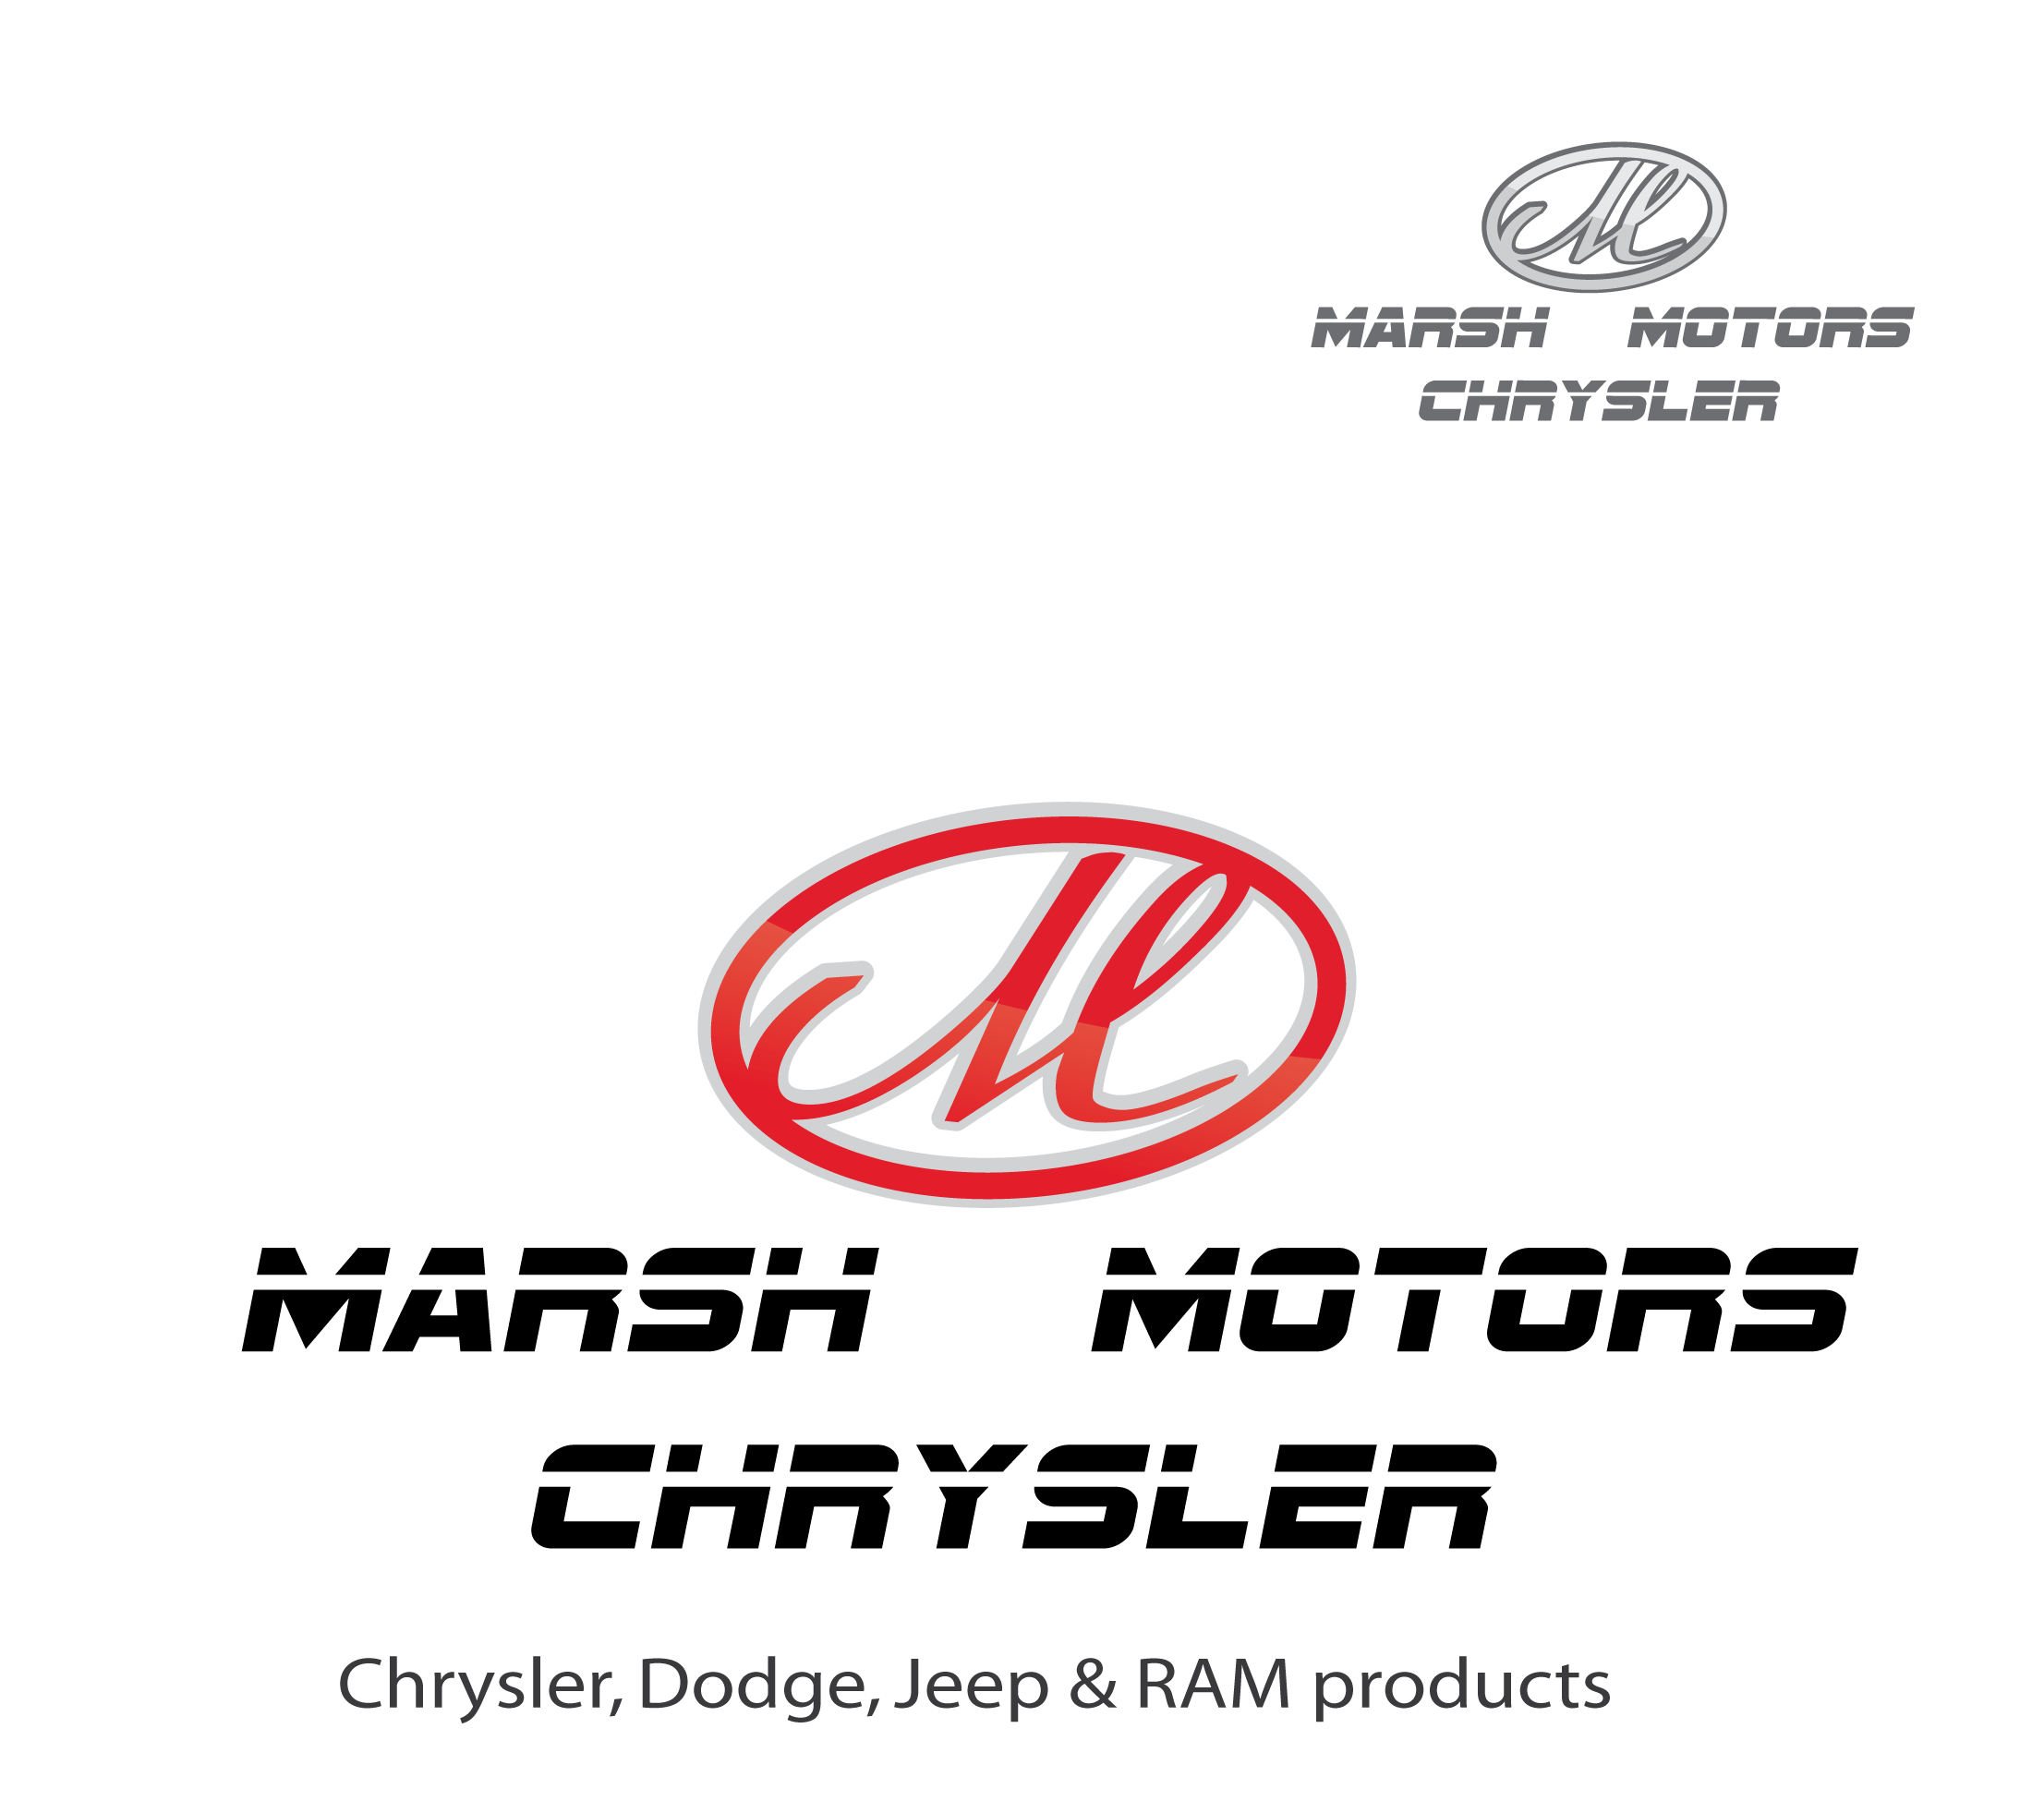 Logo Design by 354studio - Entry No. 44 in the Logo Design Contest Marsh Motors Chrysler Logo Design.